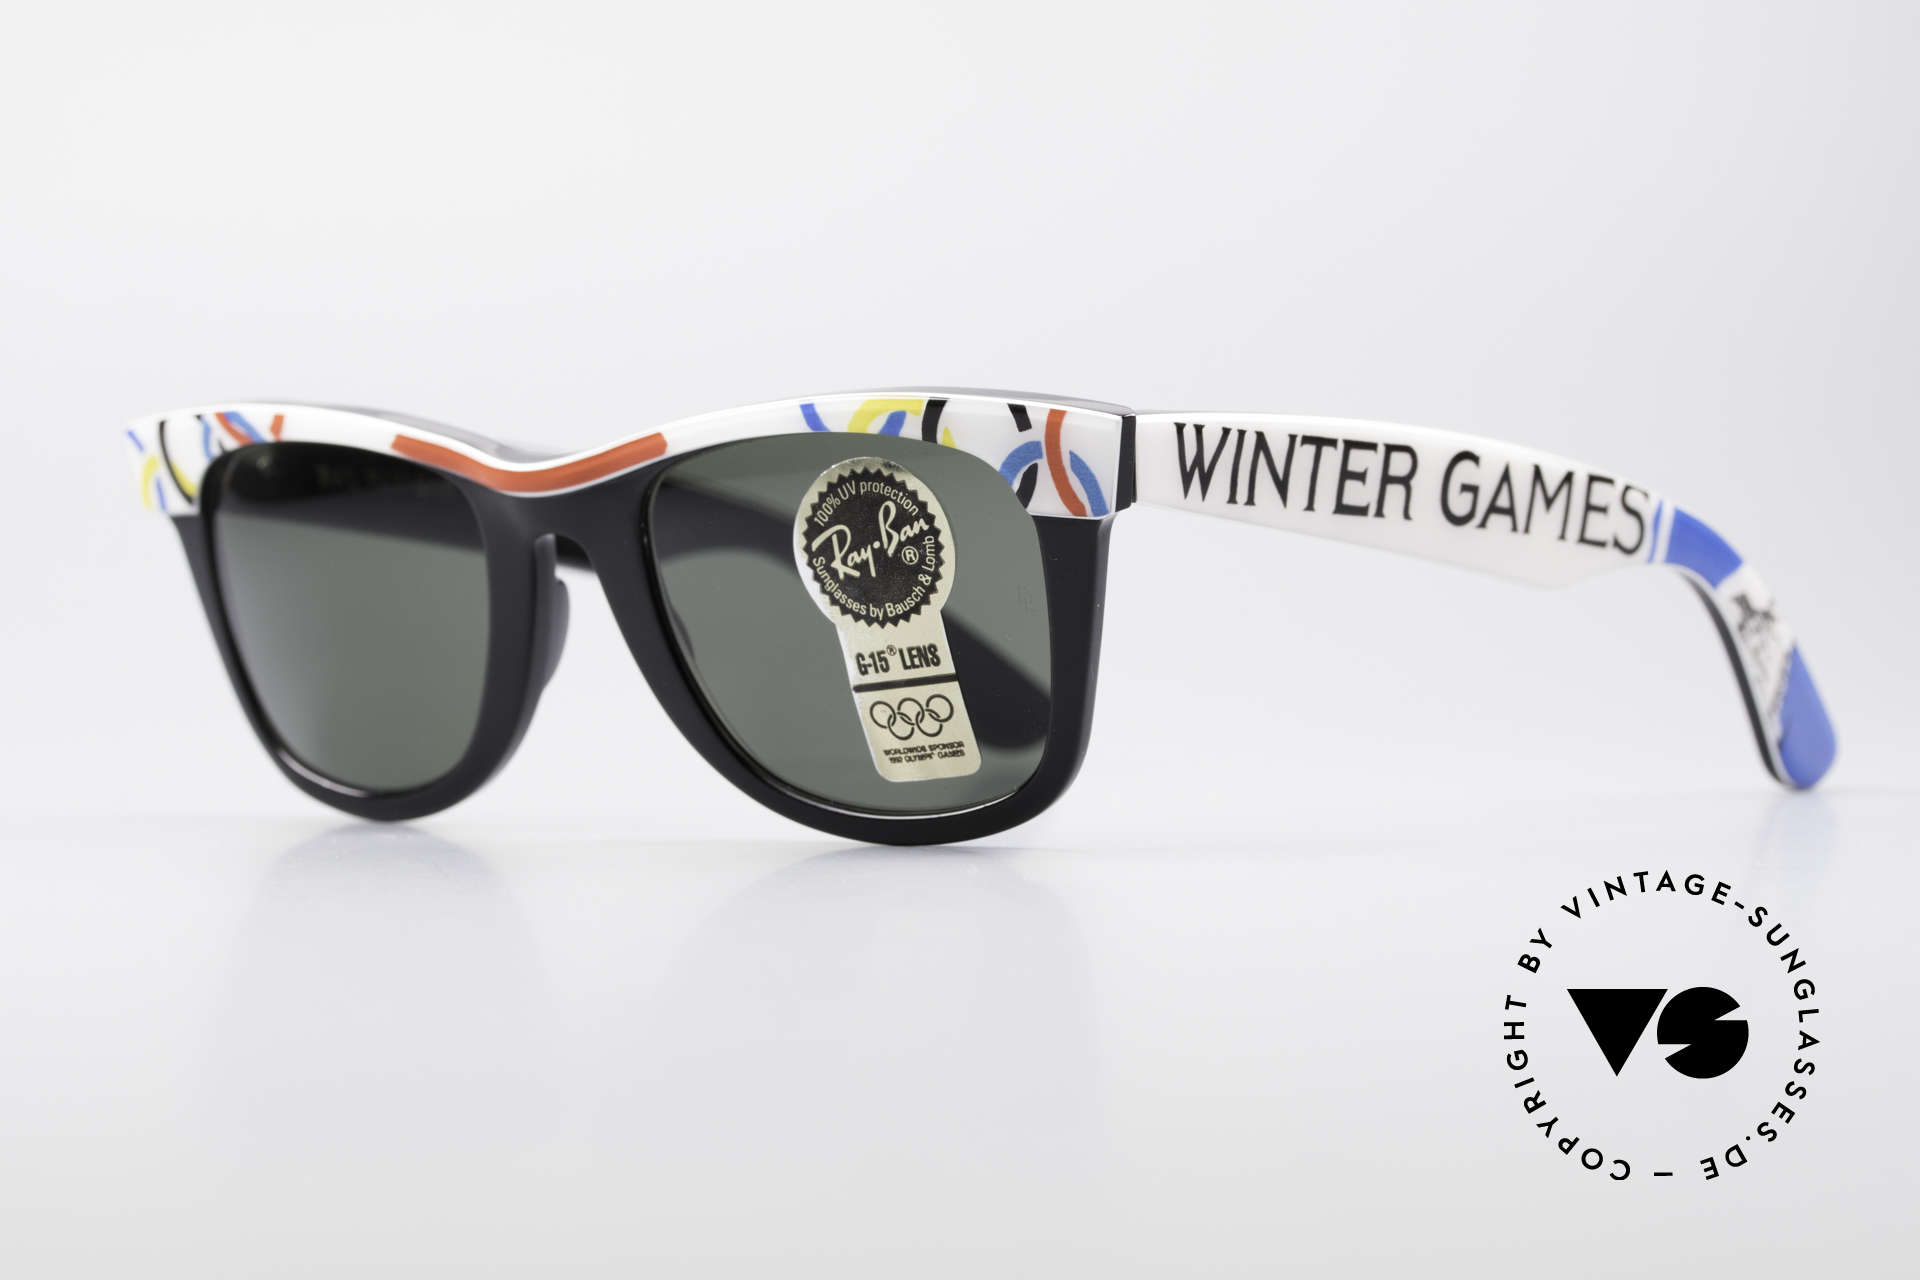 Ray Ban Wayfarer I Olympic Games St. Moritz, B&L quality mineral lenses (for 100% UV-protection), Made for Men and Women